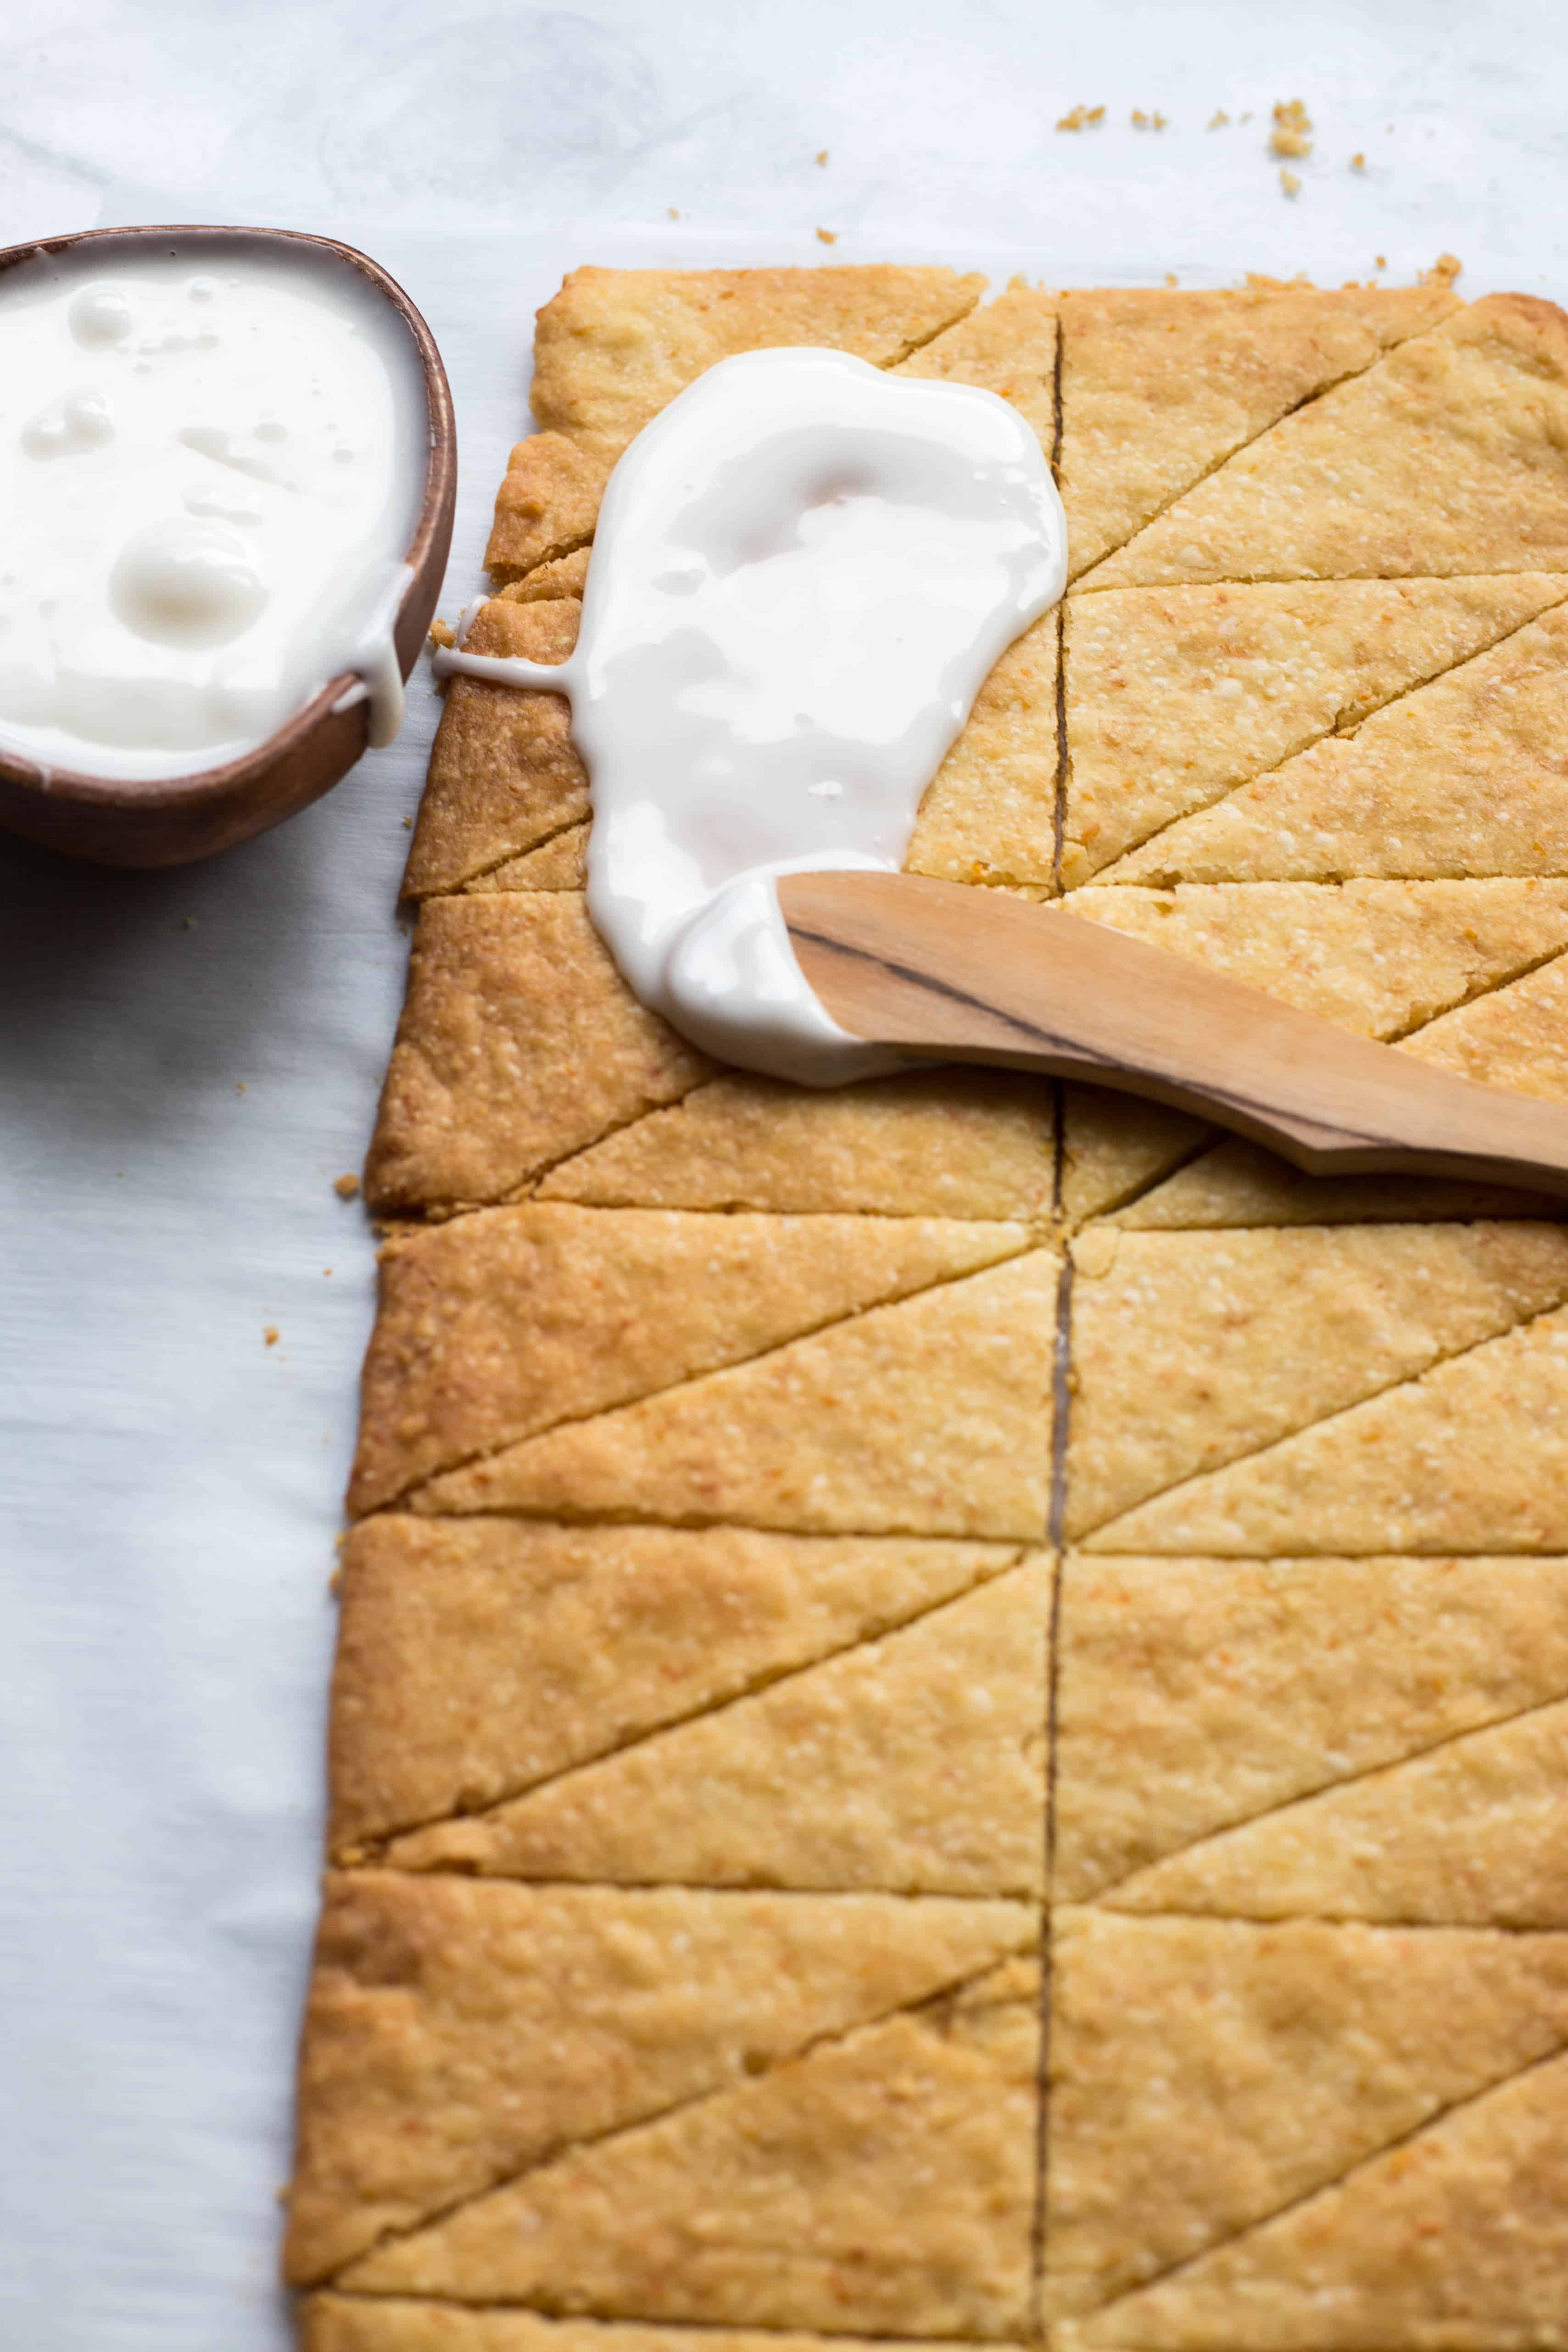 Spreading white icing on a sheet of baked shortbread cookies cut into triangles.